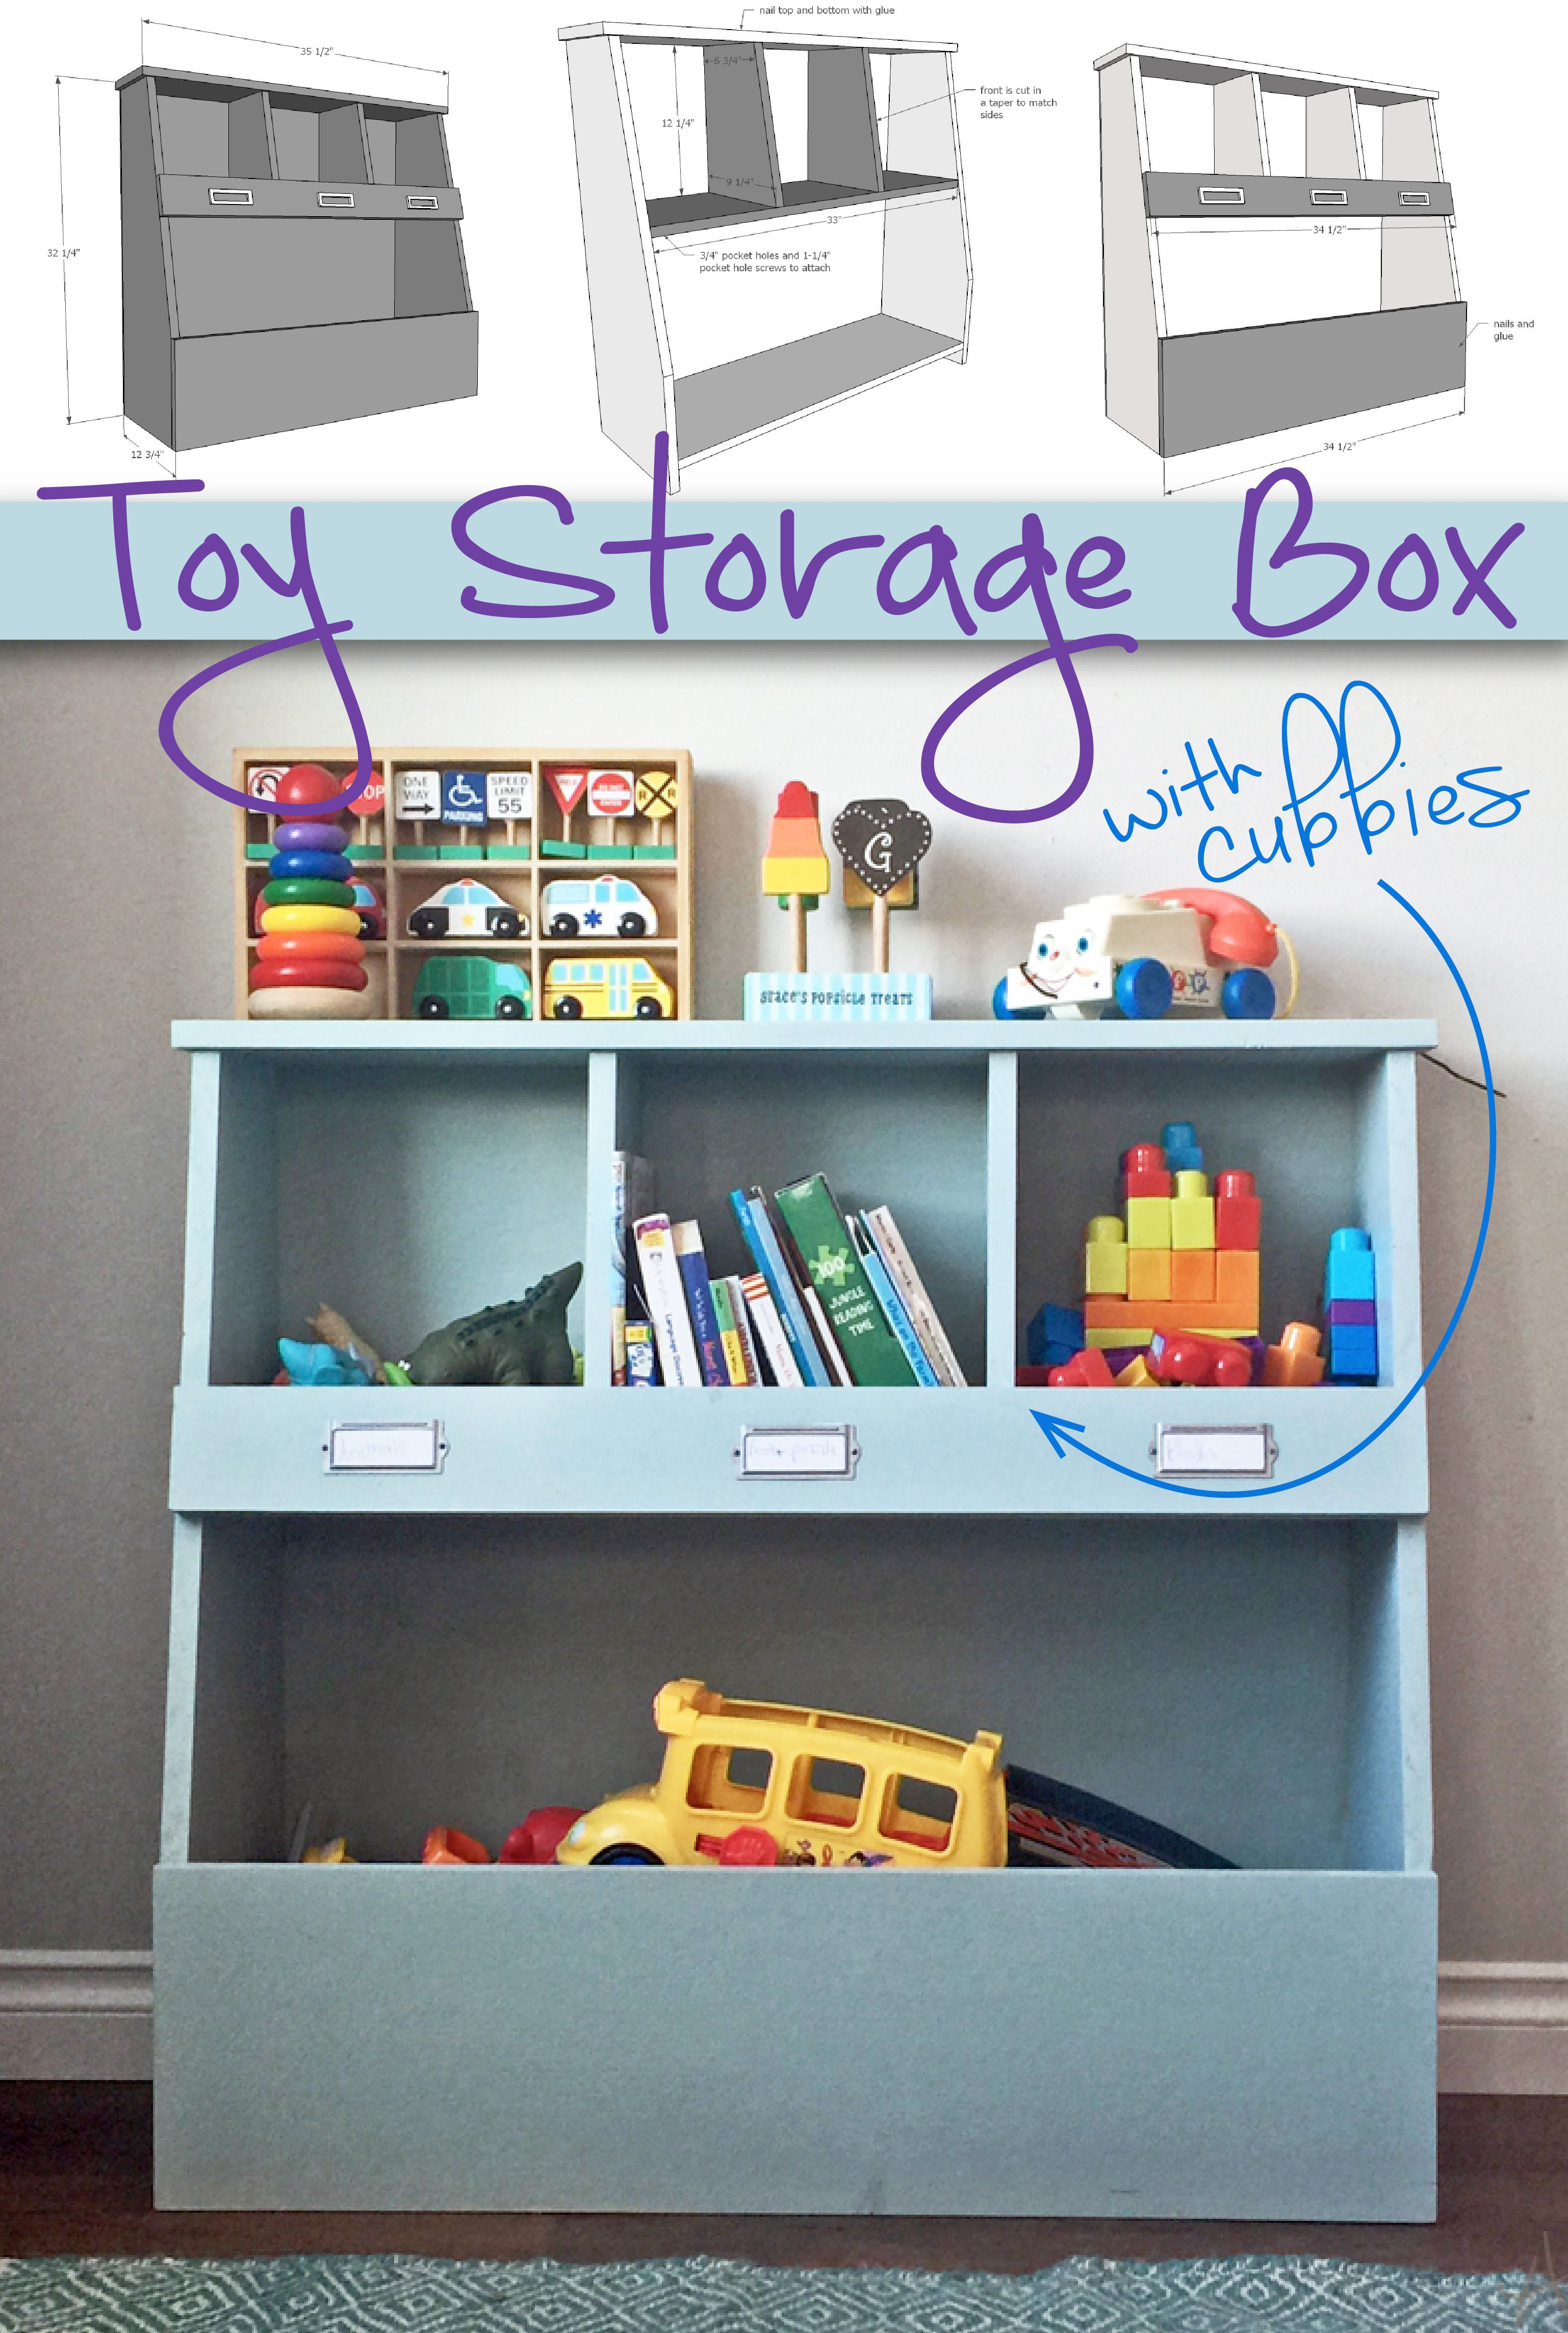 Toy Storage Box With Cubbies Keep Your Home Organized And Your Kids throughout dimensions 3075 X 4575